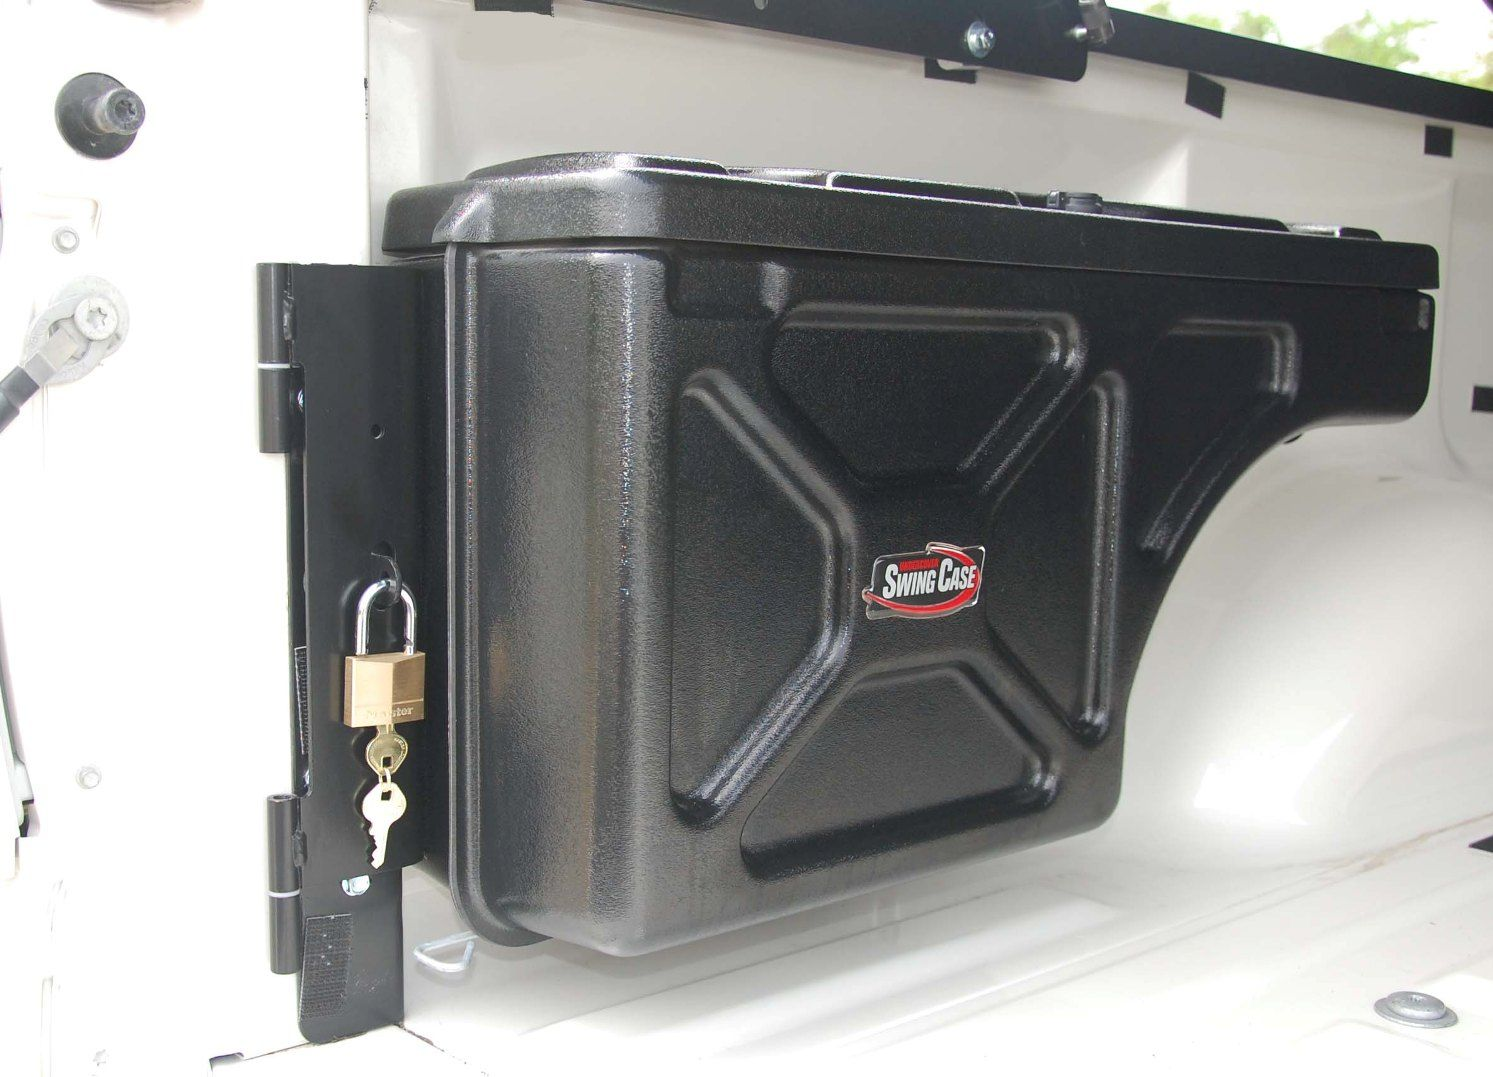 Undercover Swing Case Truck Tool Box 2004 2012 Chevy